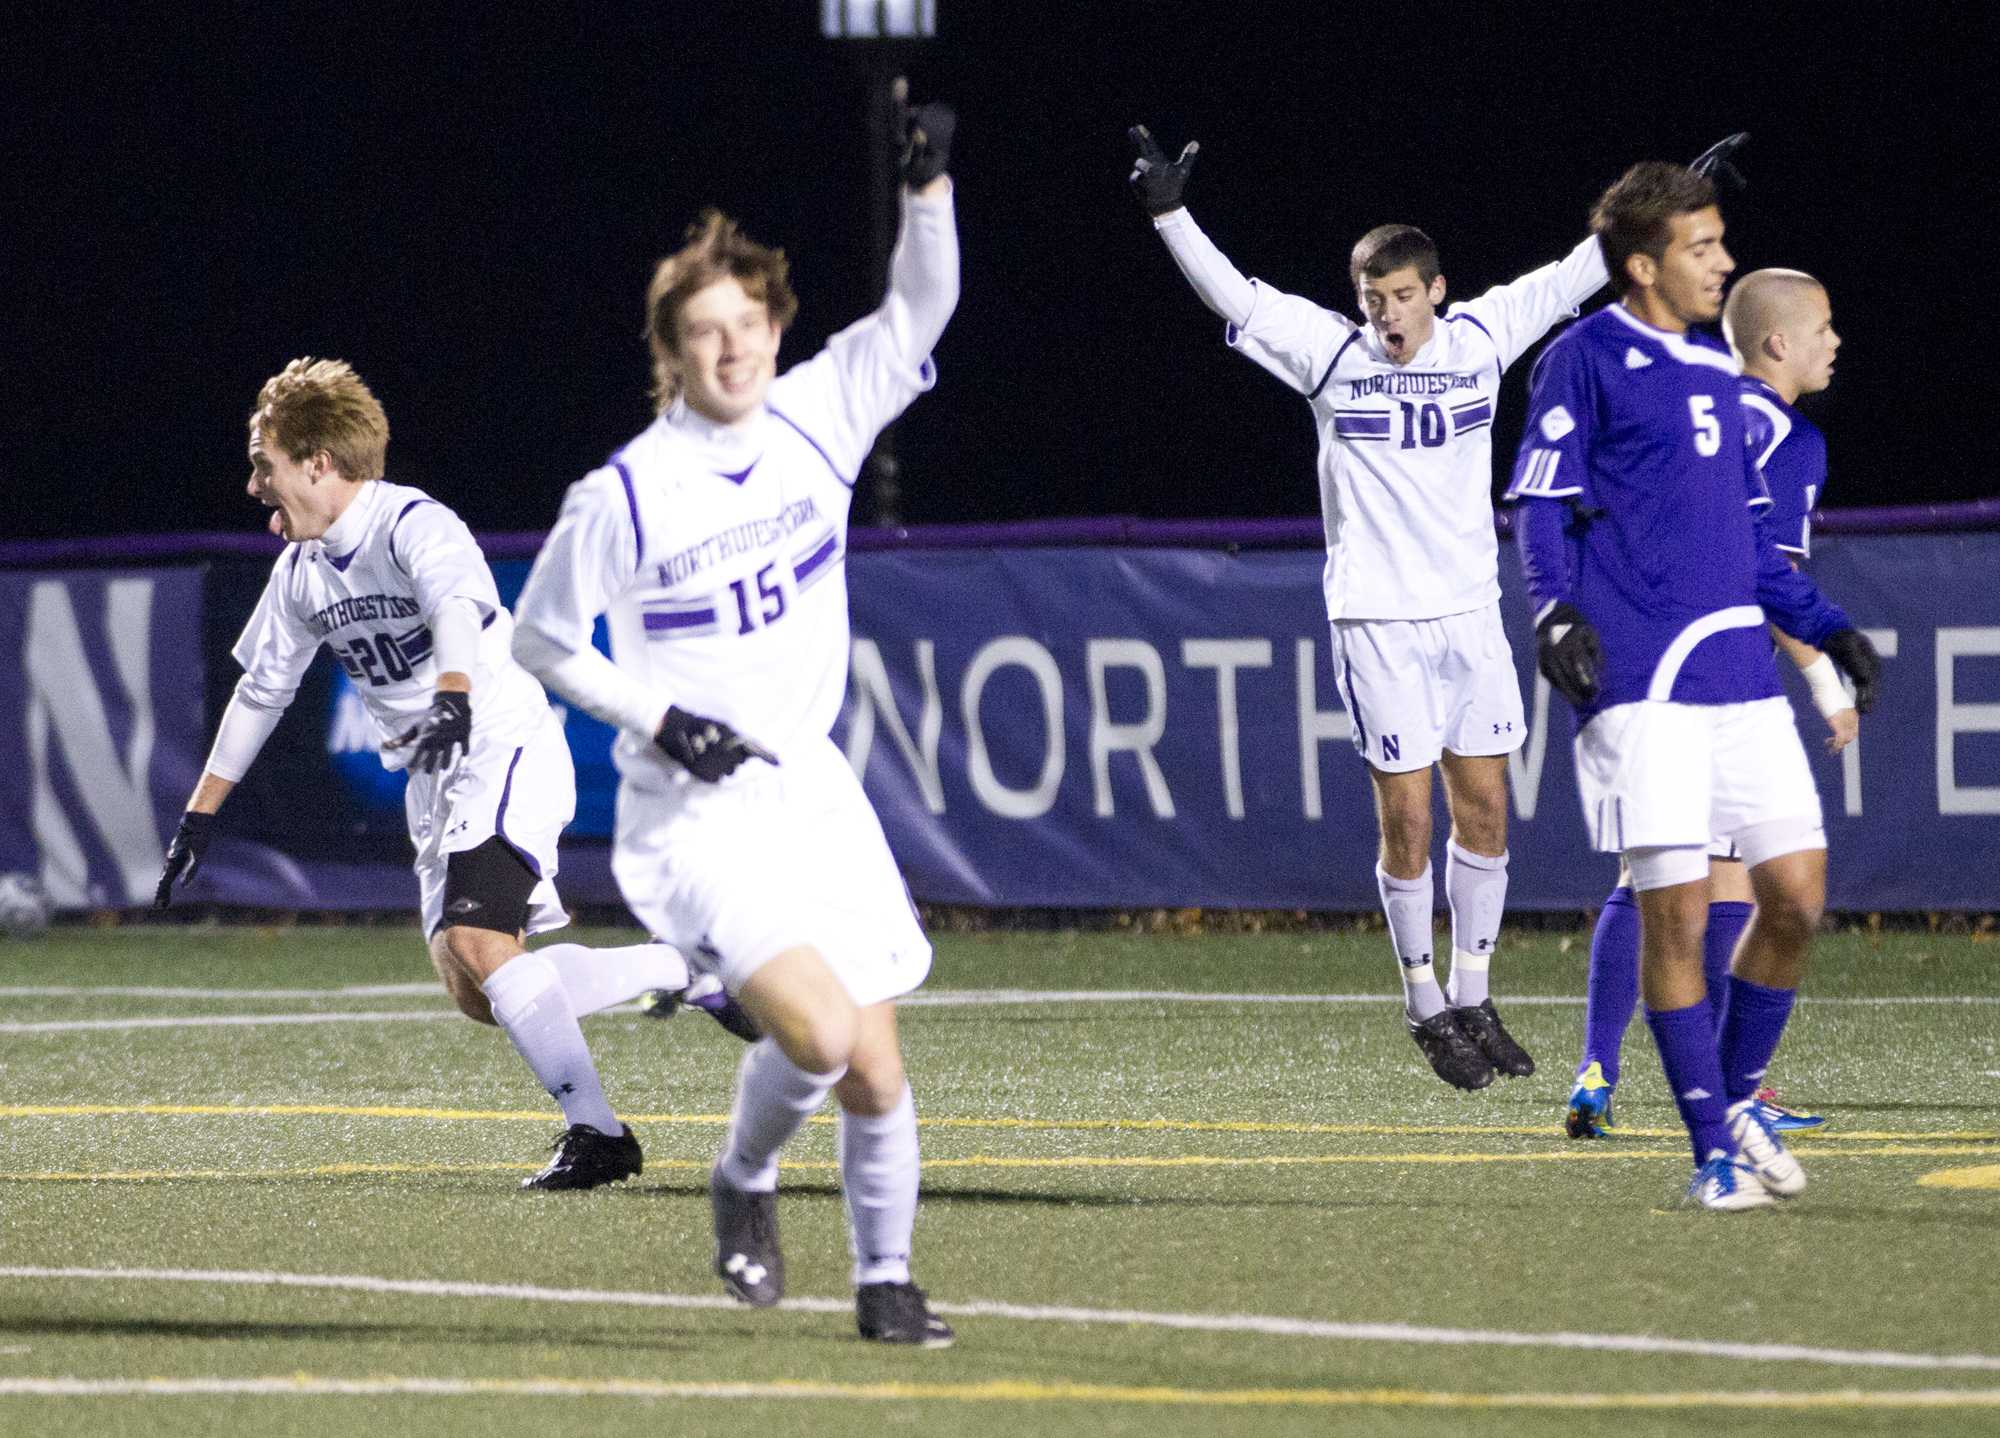 Midfielders Nick Gendron and Cole Missimo celebrate after Northwestern's victory over Western Illinois on Thursday. The Wildcats outshot the Leathernecks 19-7, but Gendron scored the game's only goal.